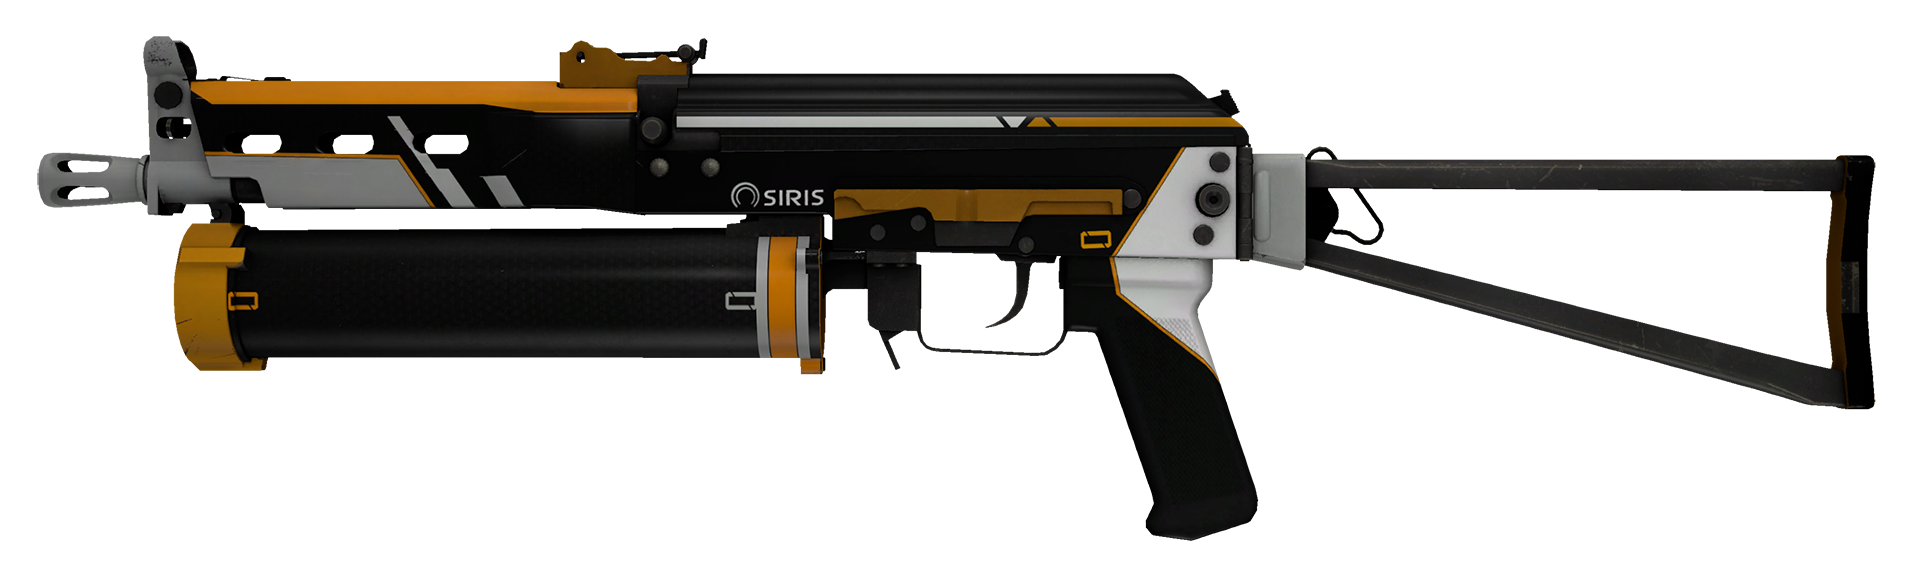 PP-Bizon Osiris Large Rendering